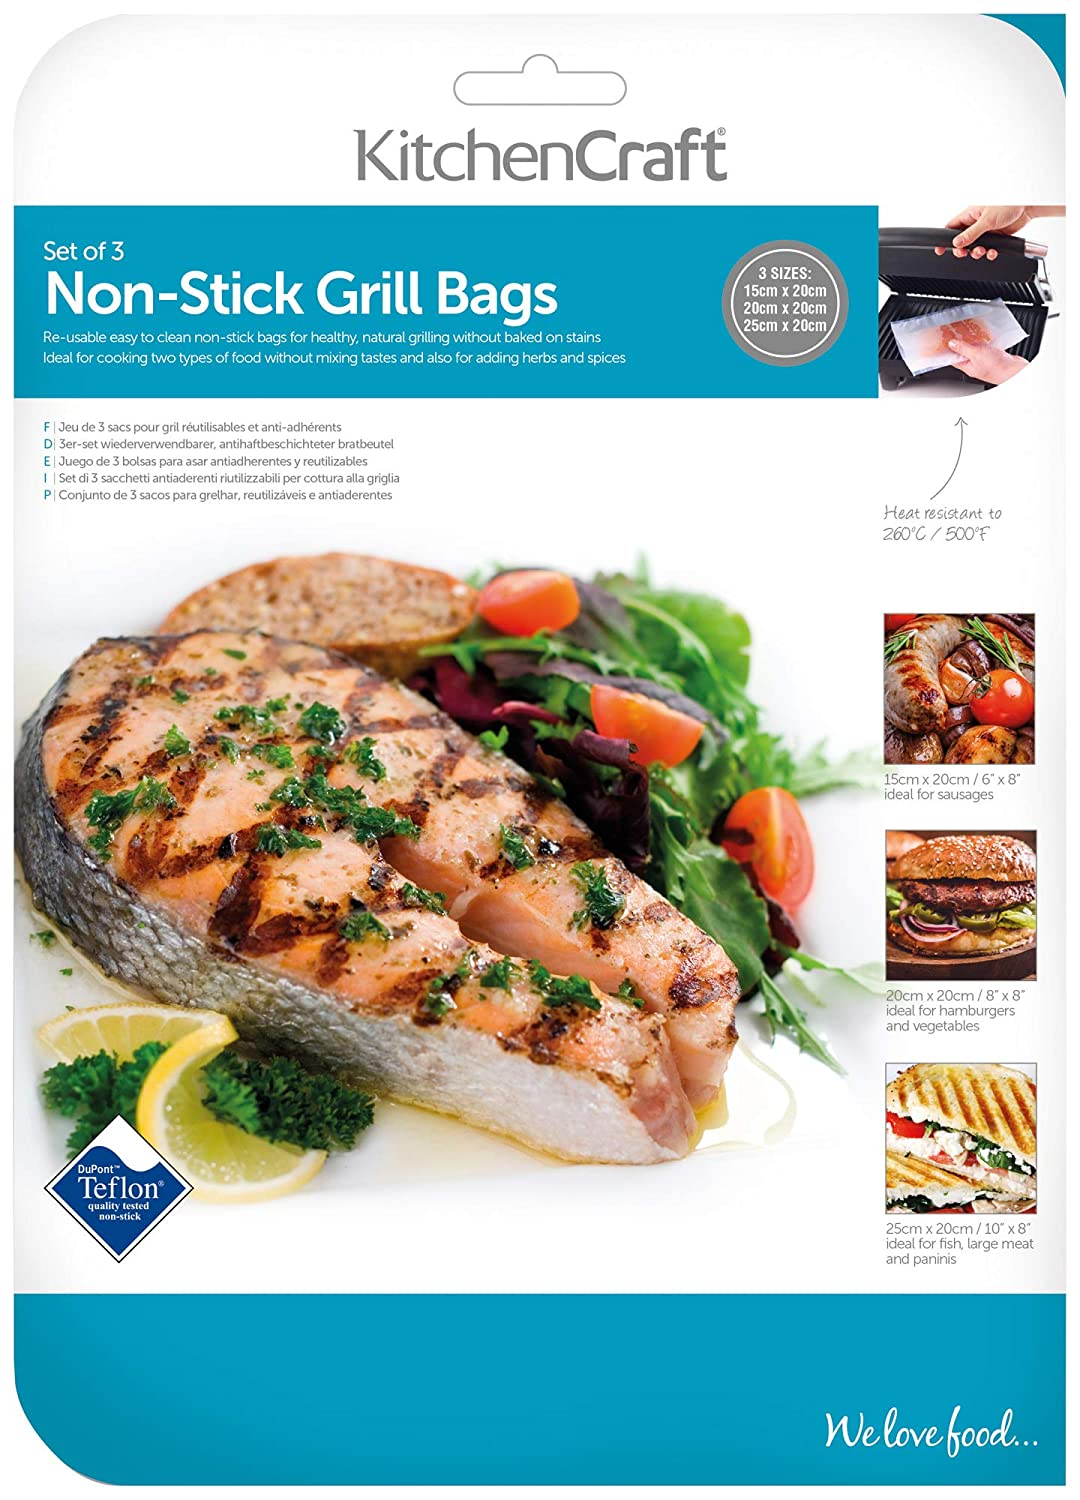 Amazon.com: Kitchen Craft Grill Bags, Non-Stick, Reusable ...